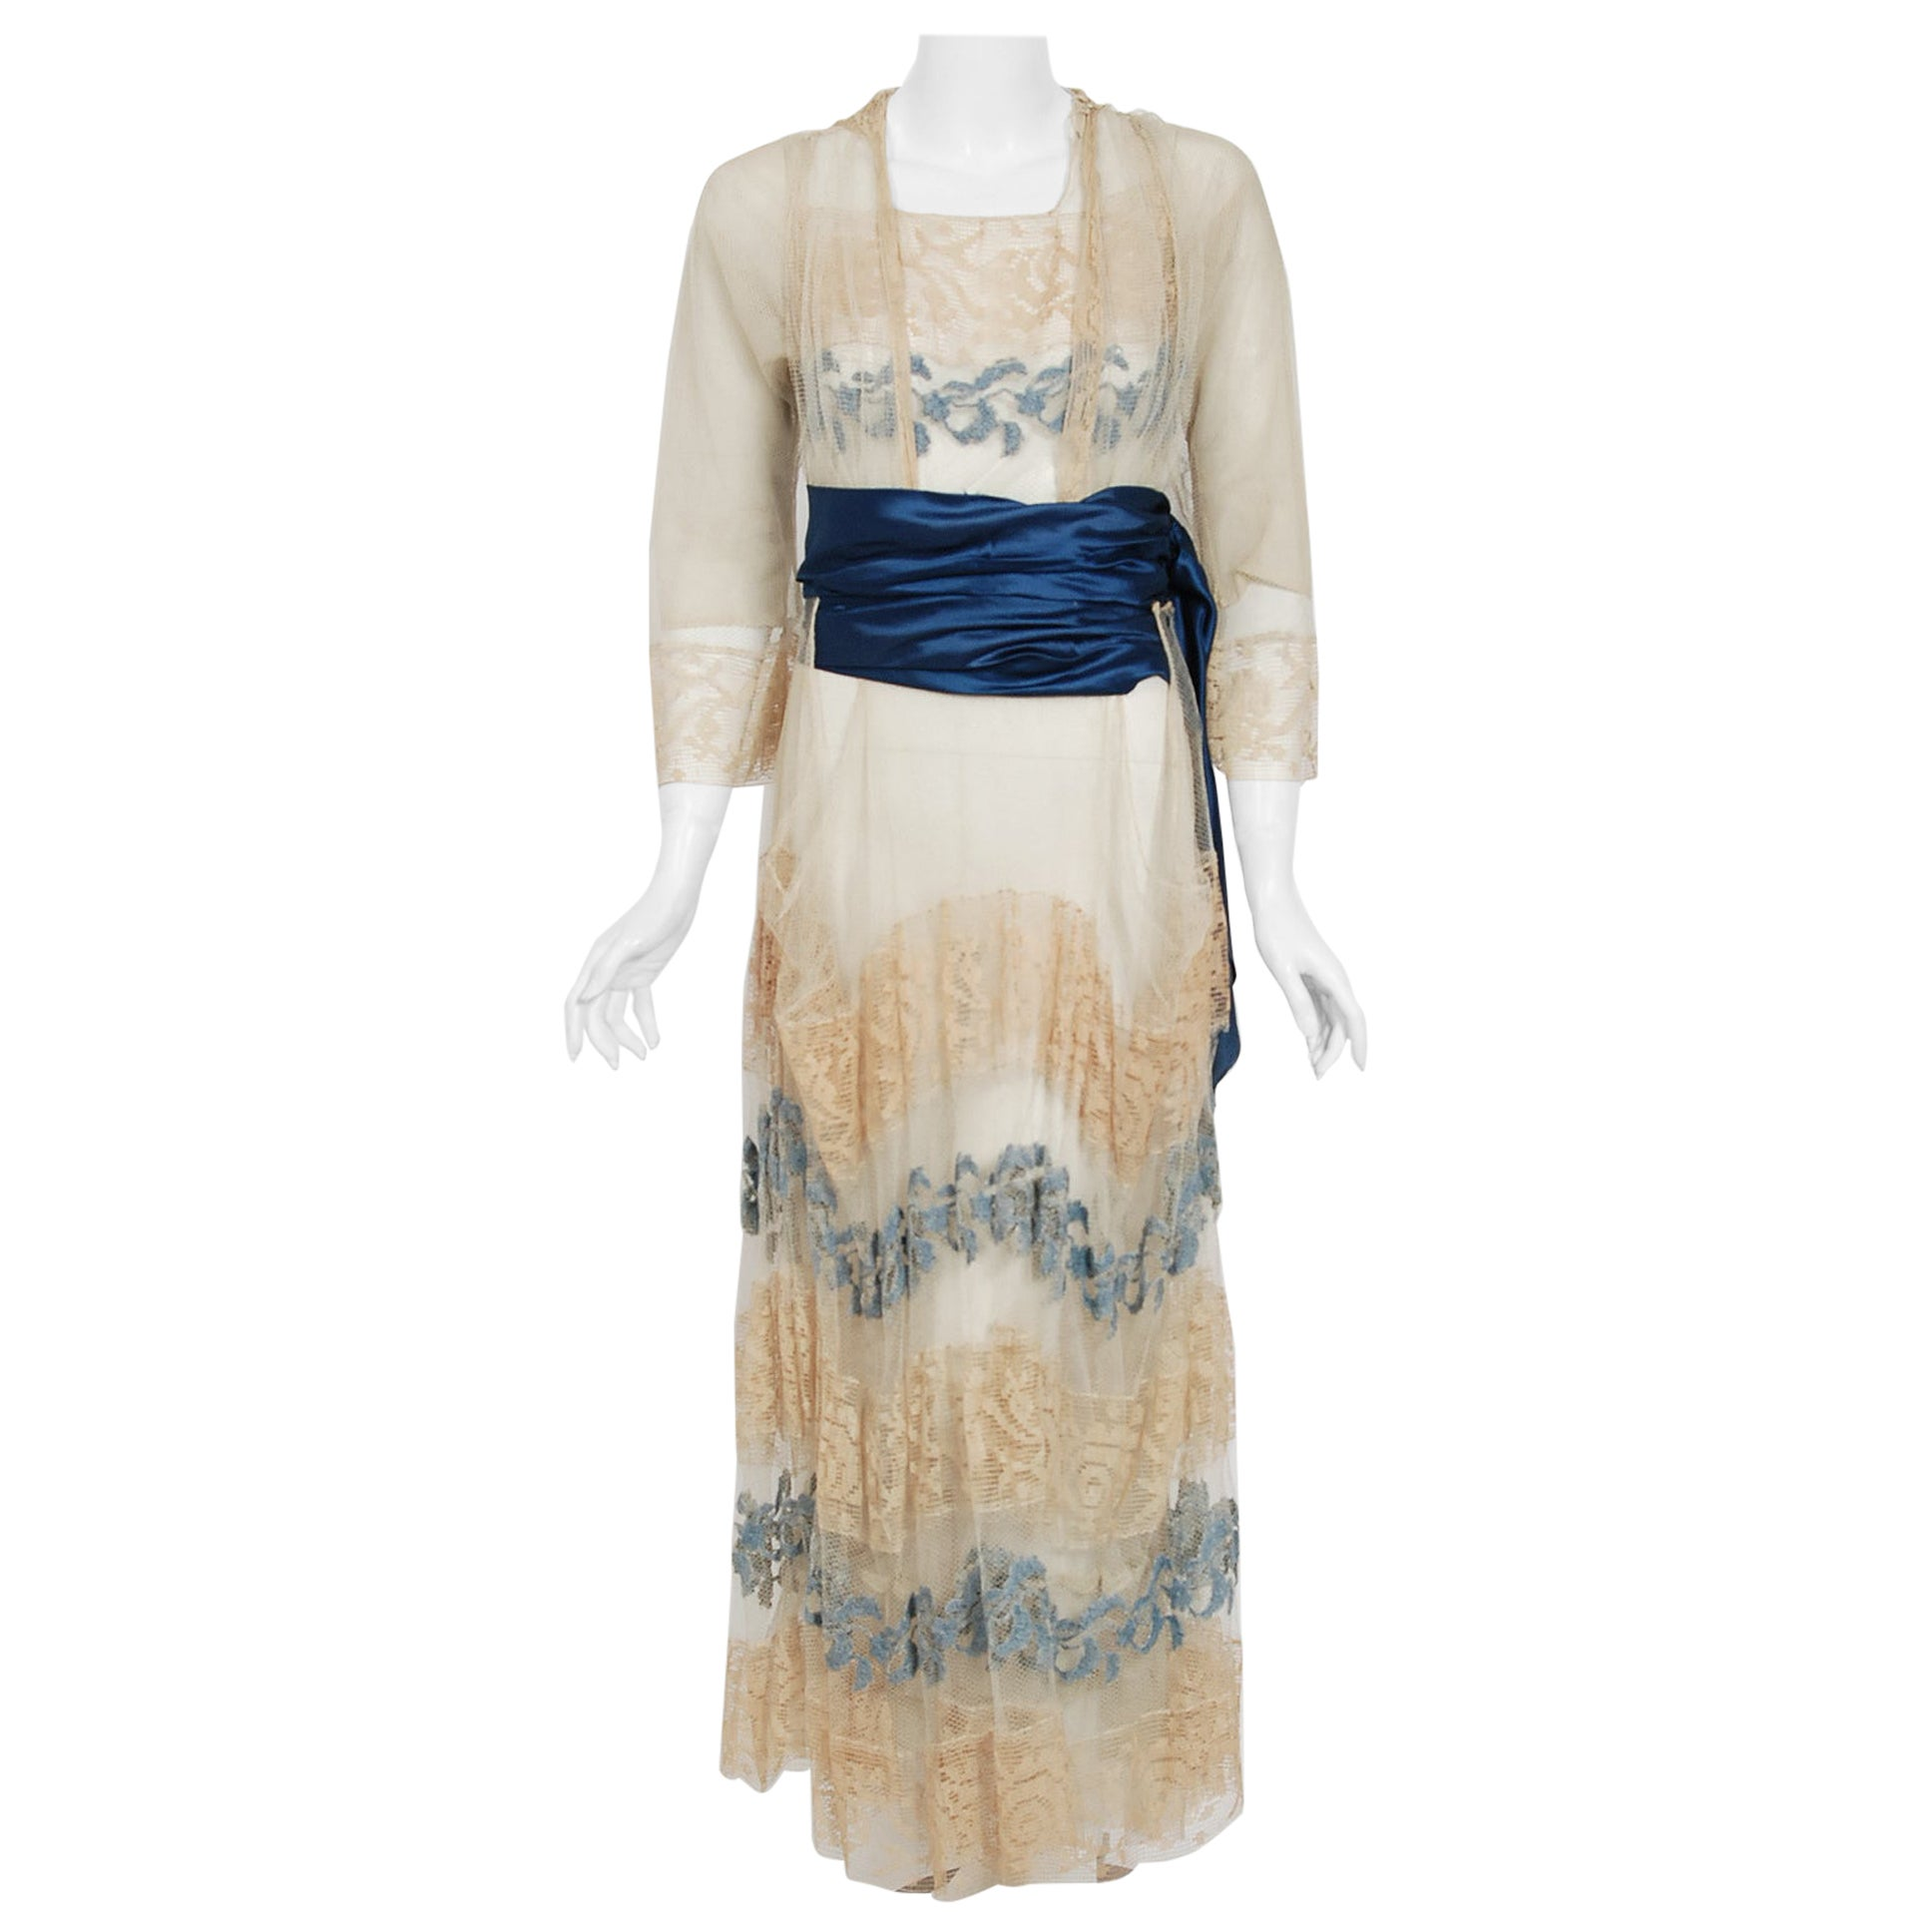 1910's Julius Garfinckel Couture Beige Embroidered Net-Lace Blue Silk Sash Dress